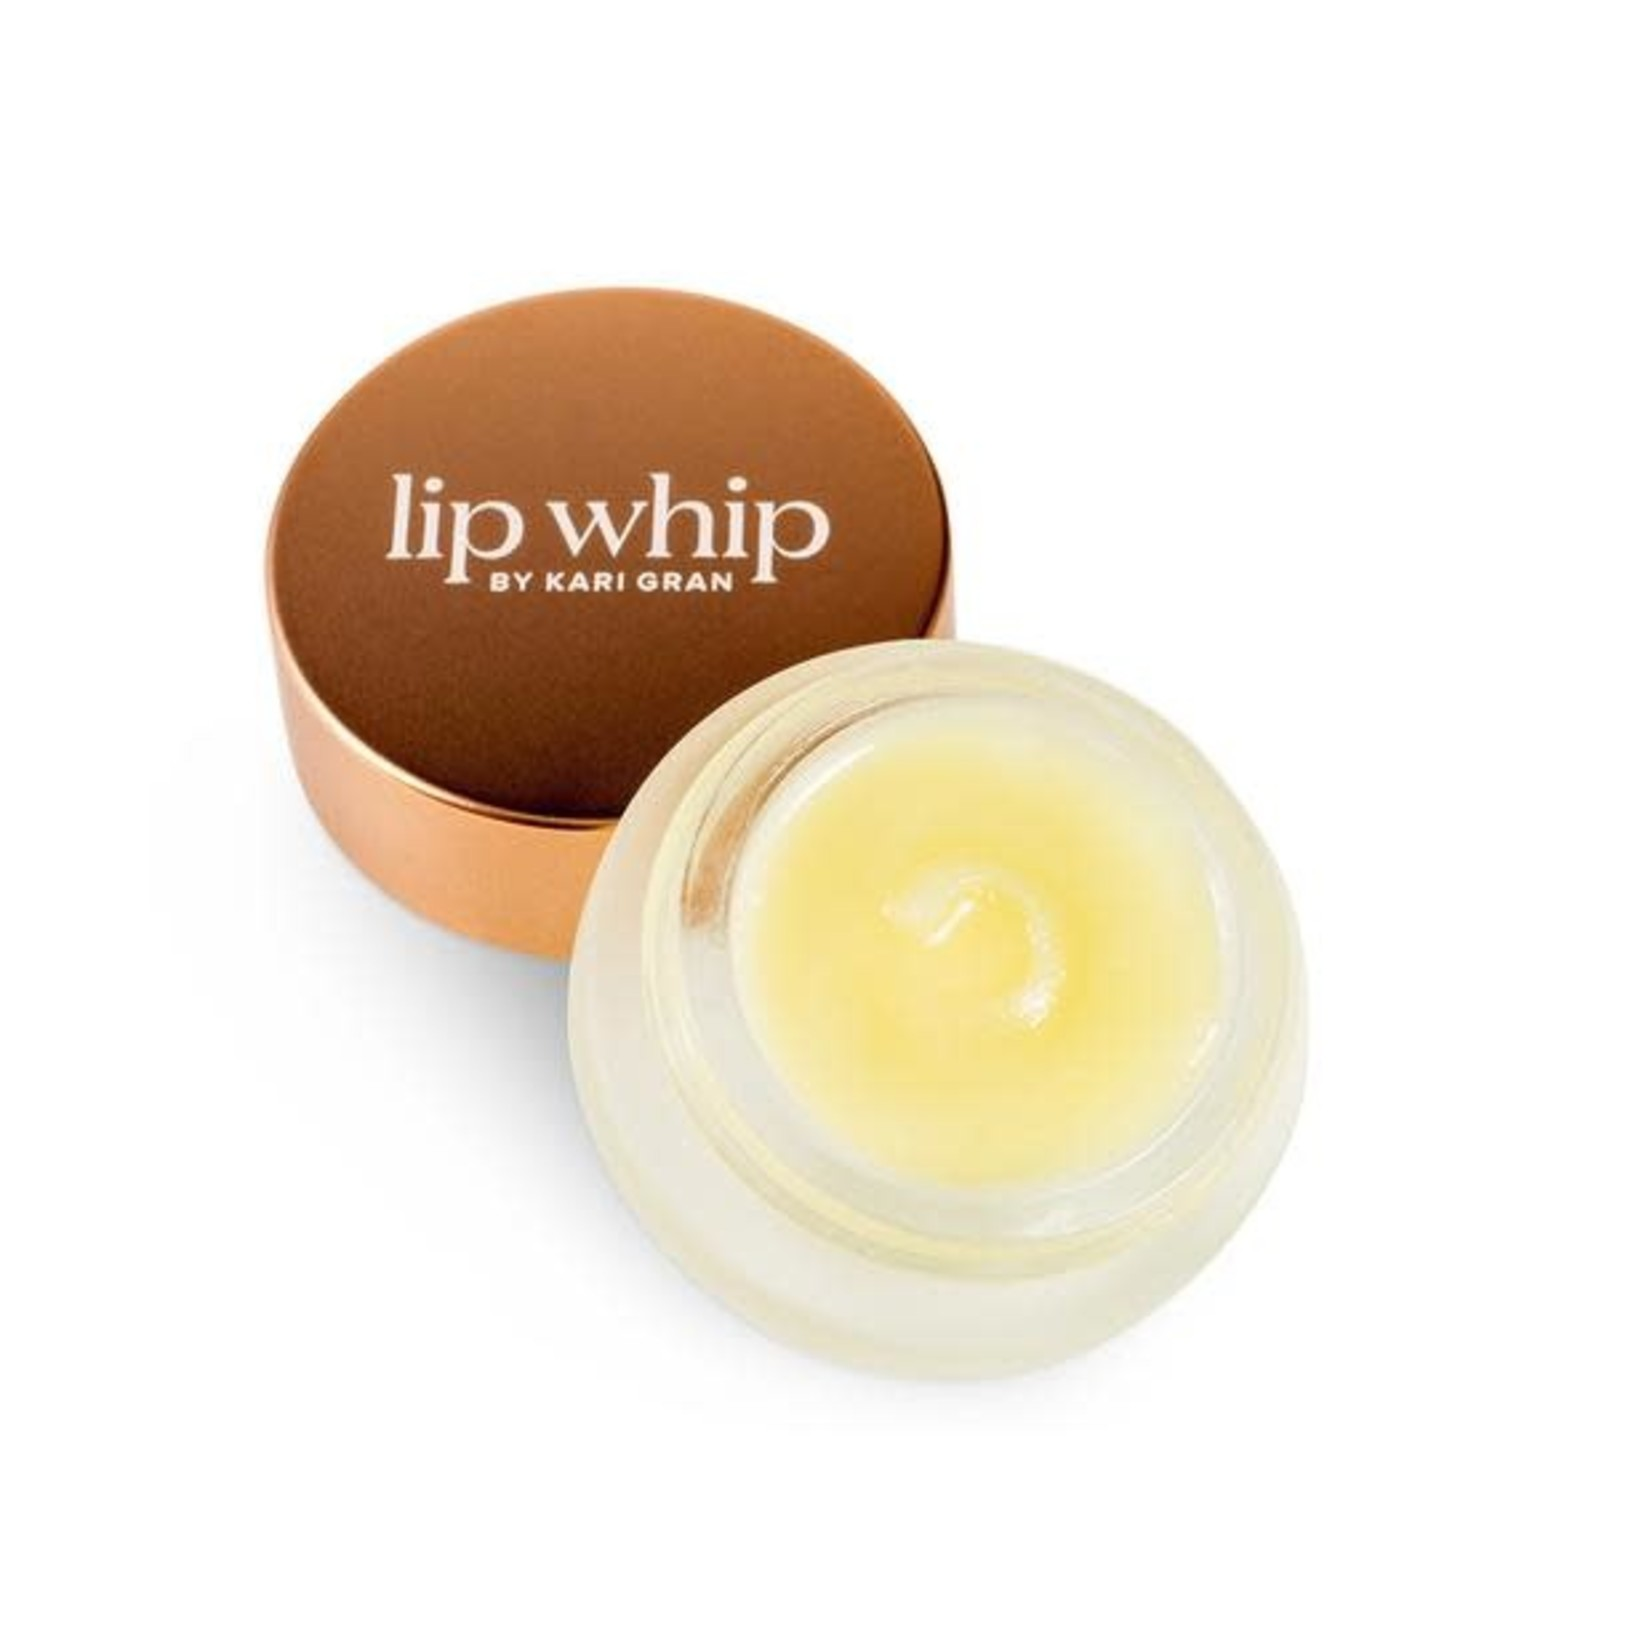 Kari gran Kari gran Lip Whip  Peppermint Naked